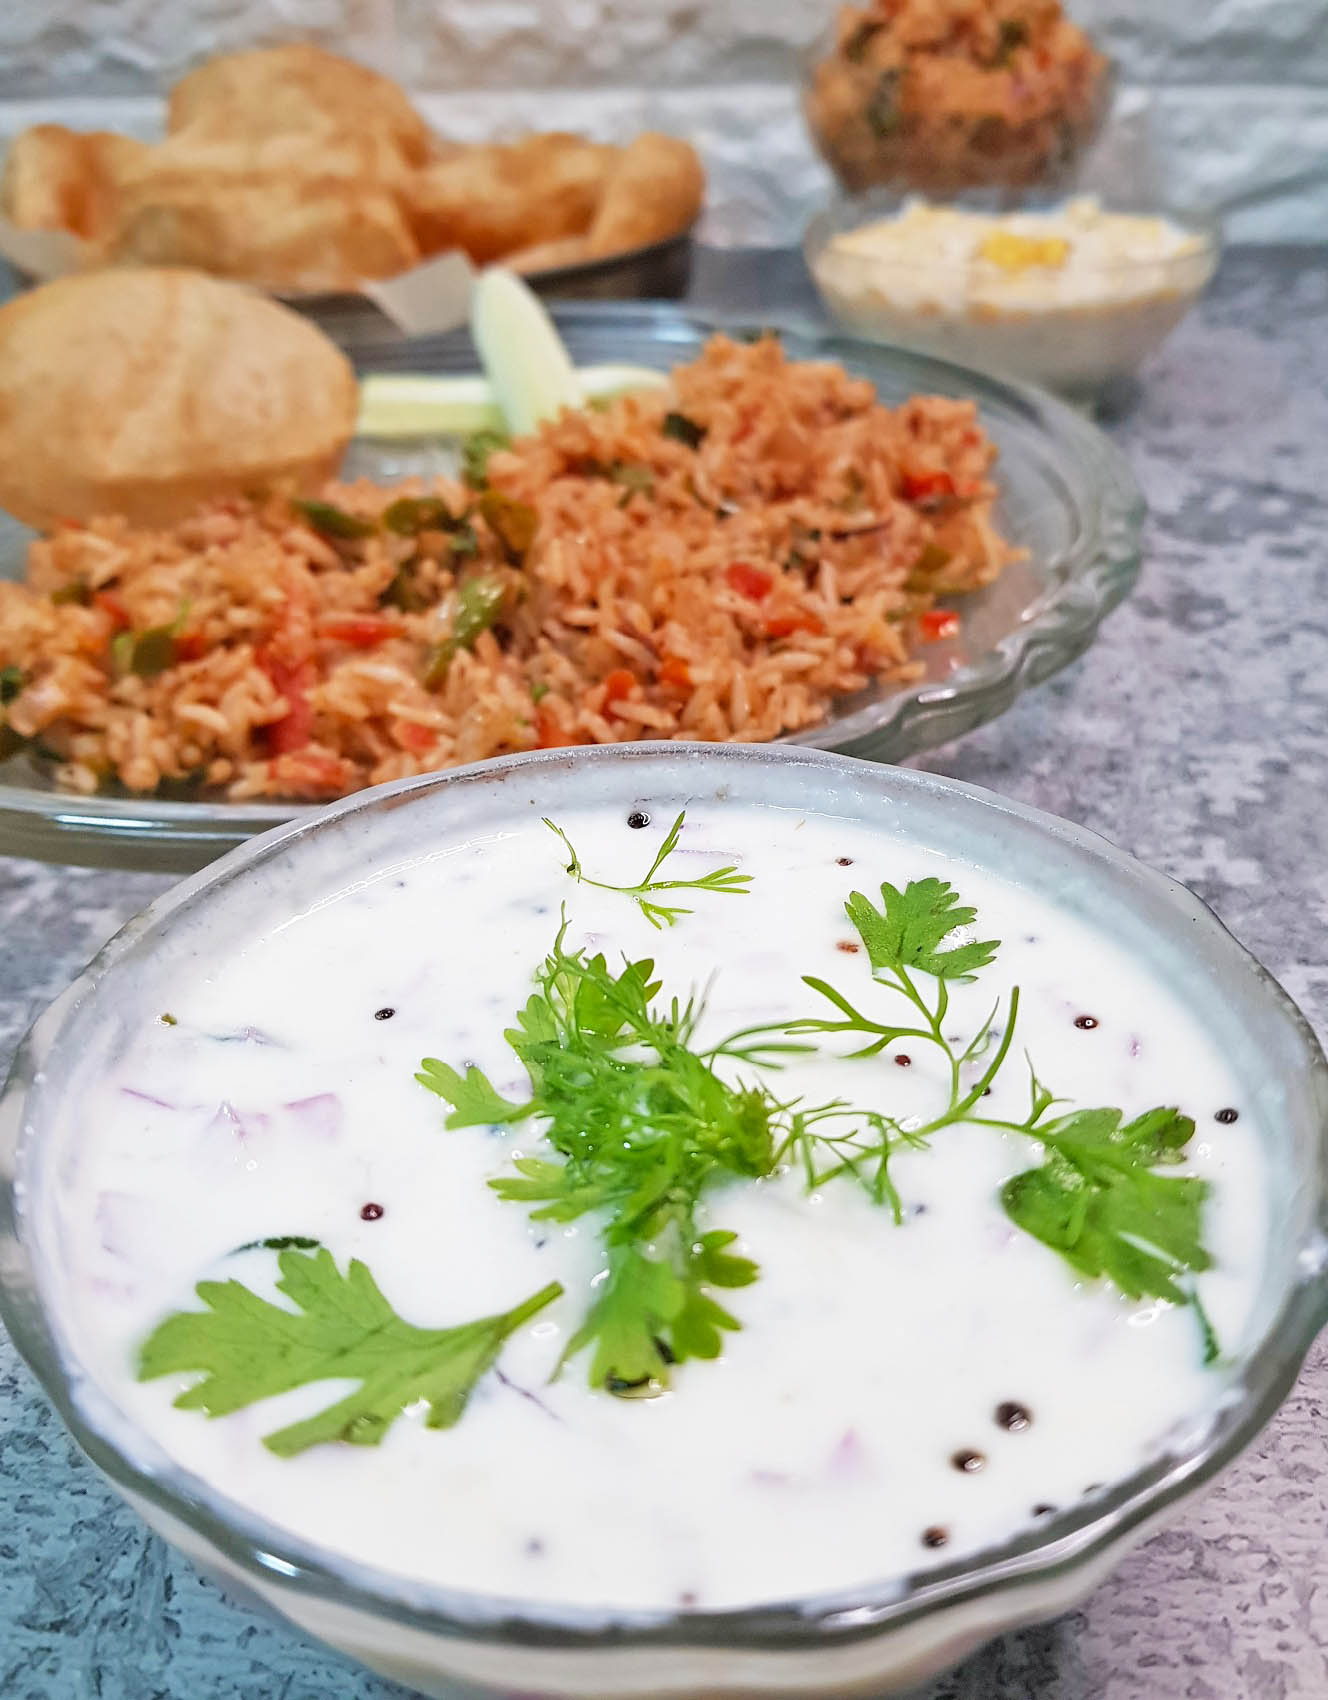 Onion Raita with Tadka Recipe by Foodomania | South-Indian Pachadi | Tadke-wala raita | प्याज़ का रायता | வெங்காய தயிர் பச்சடி